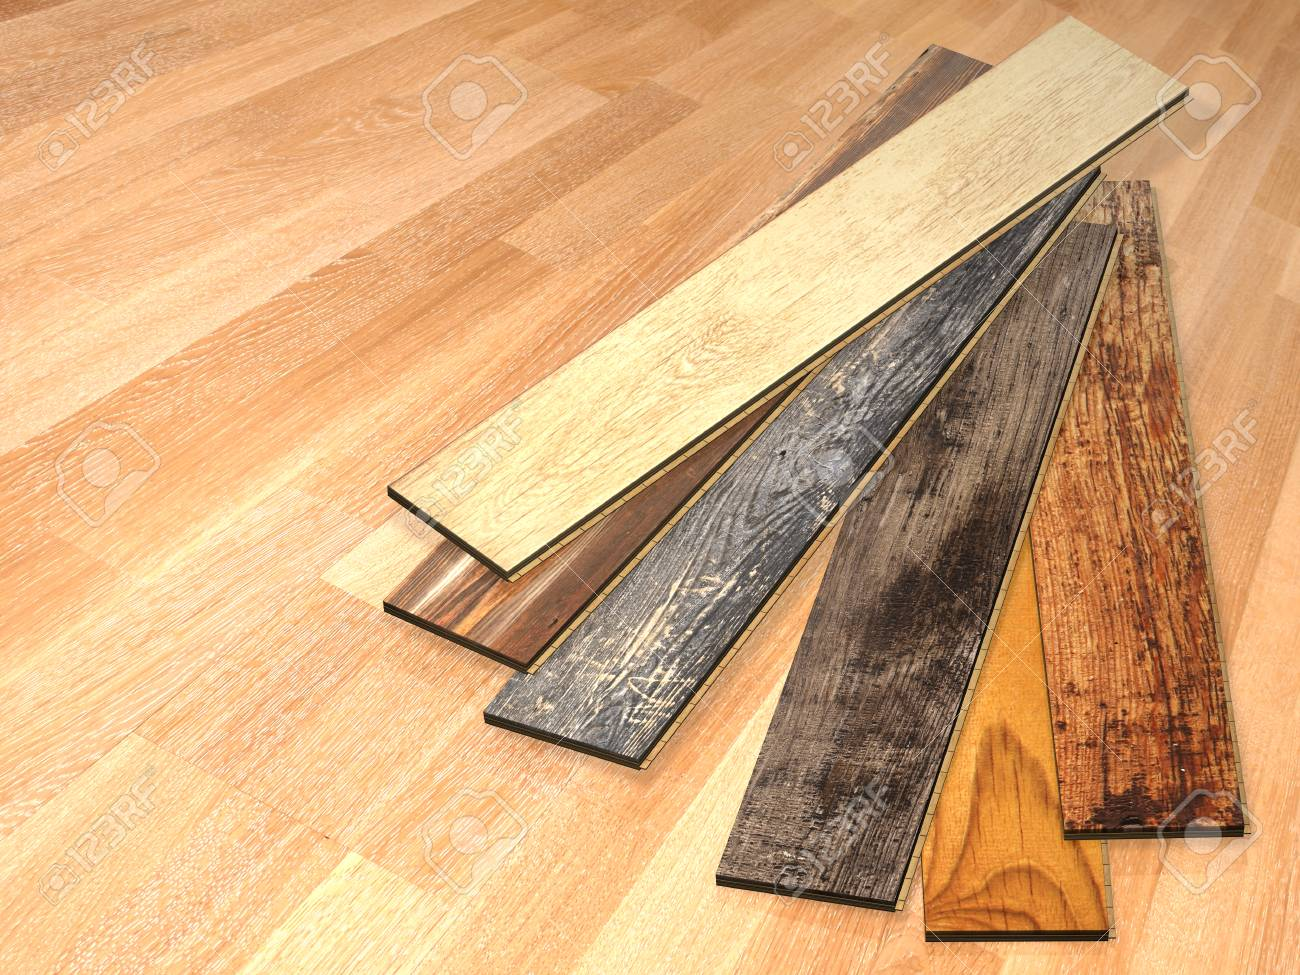 New Planks Of Oak Parquet Of Different Colors With Rustic Texture On